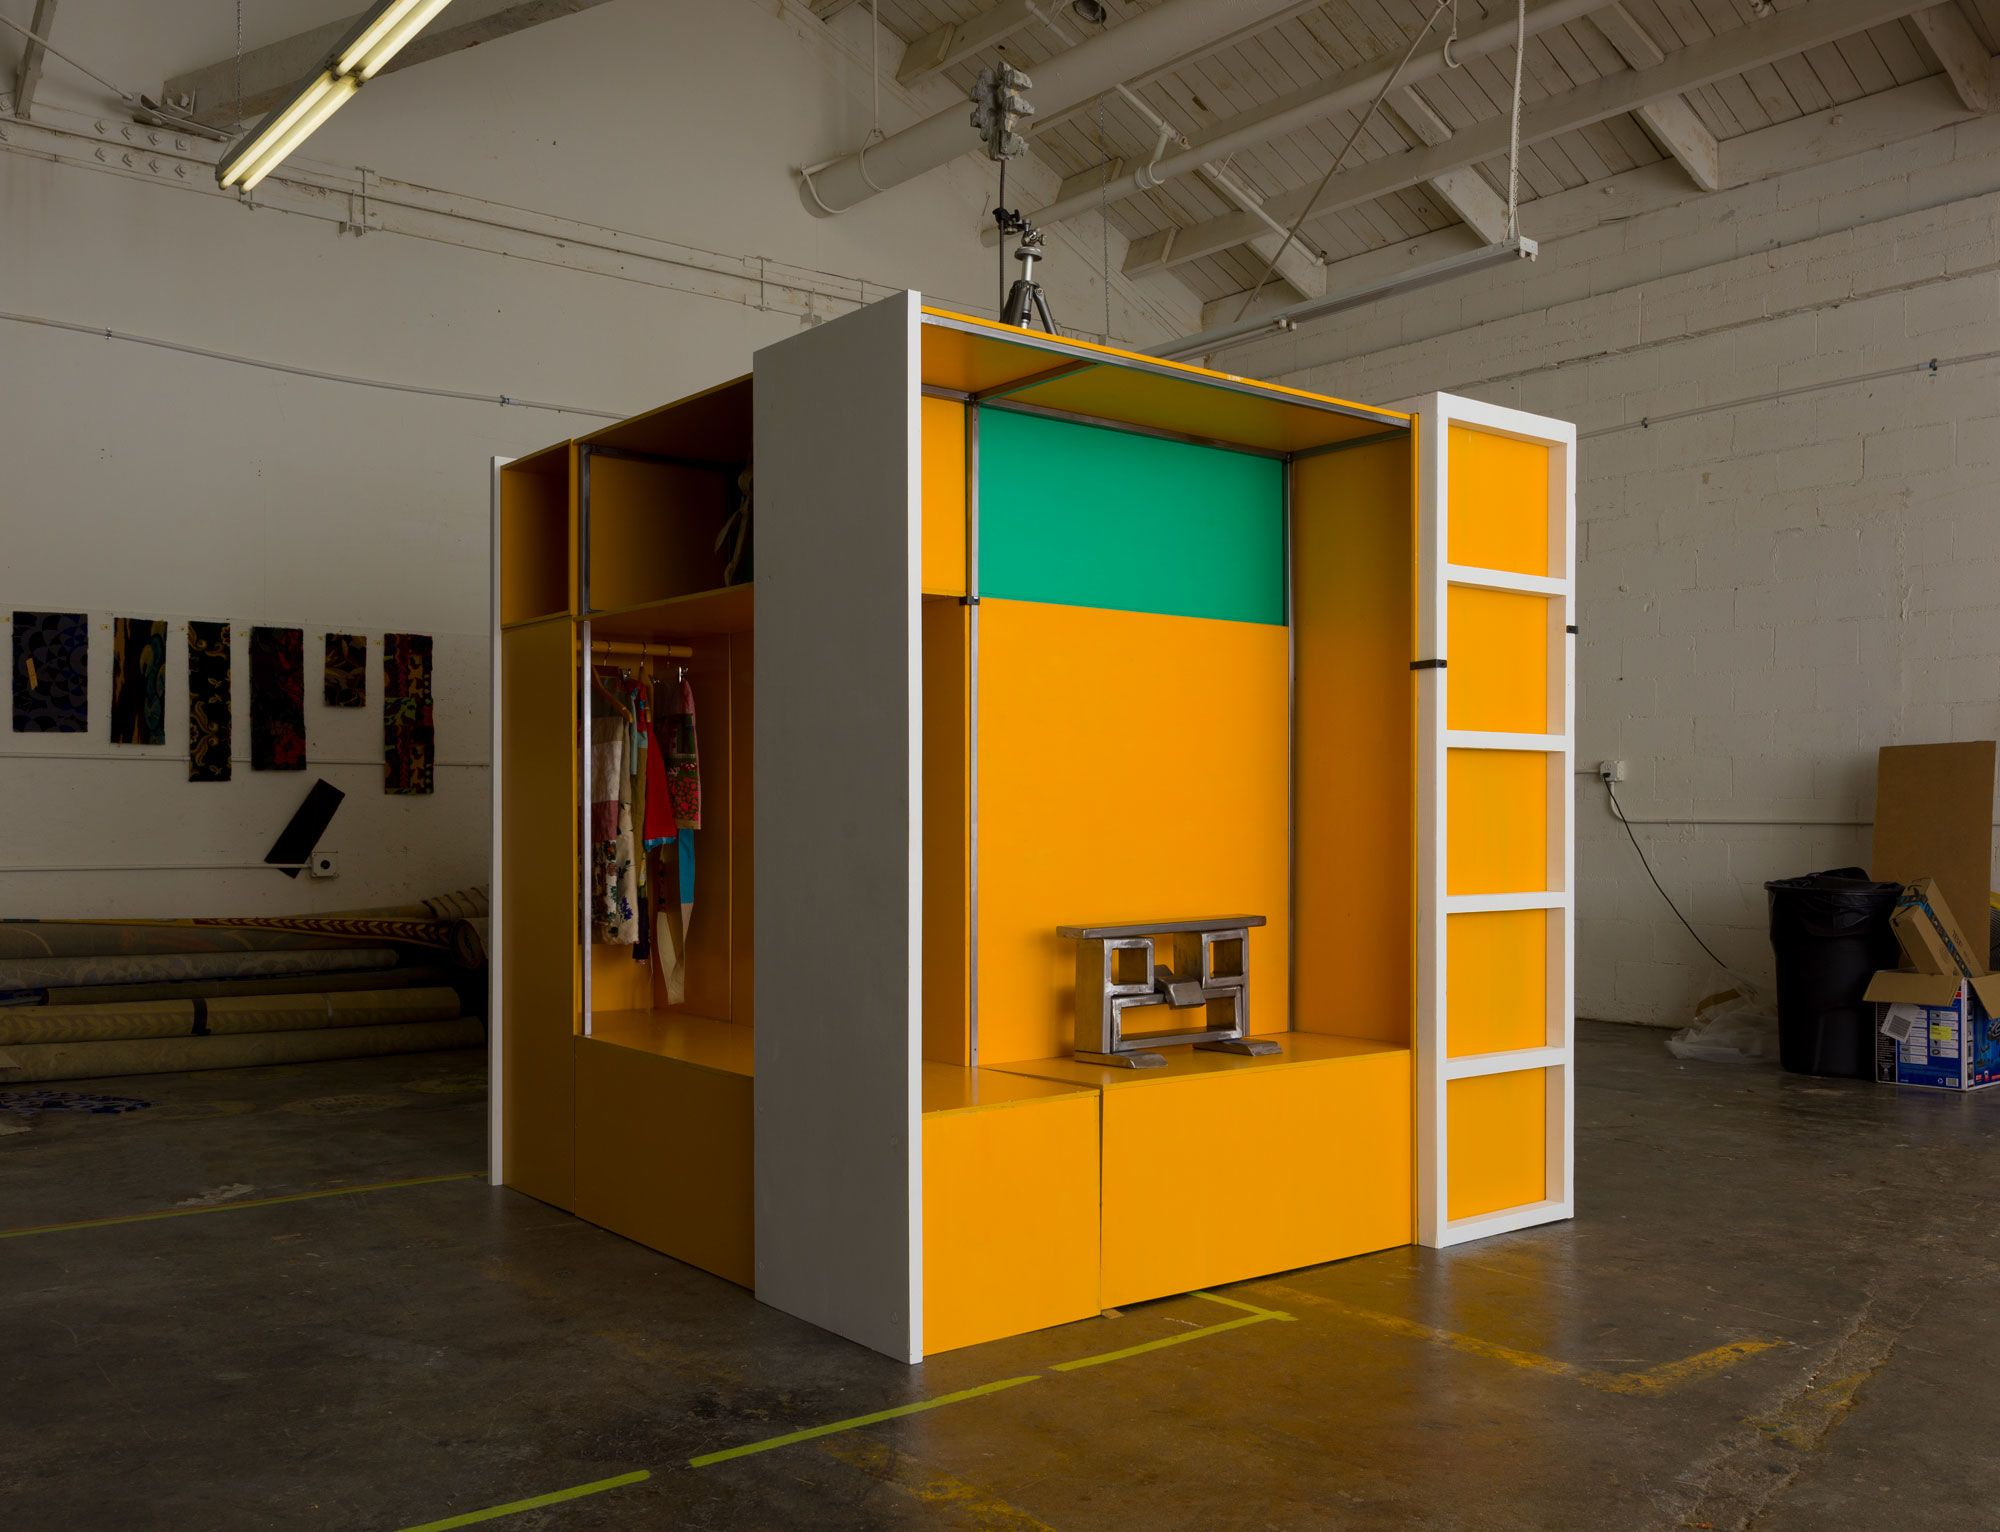 Los Angeles Museum of Art, Display System #7 (LAMOA DS 7)